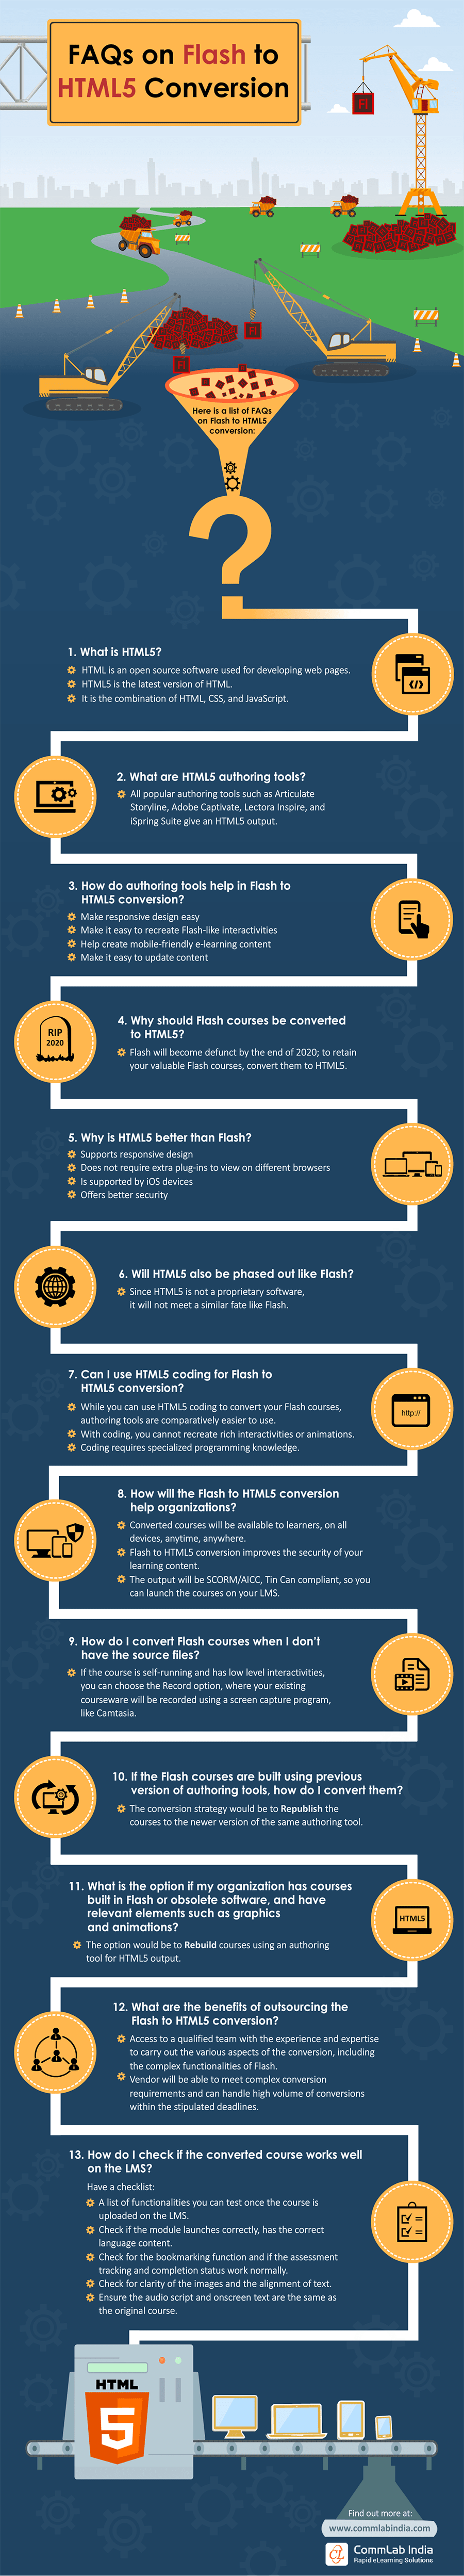 FAQs on Converting Flash to HTML5 [Infographic]